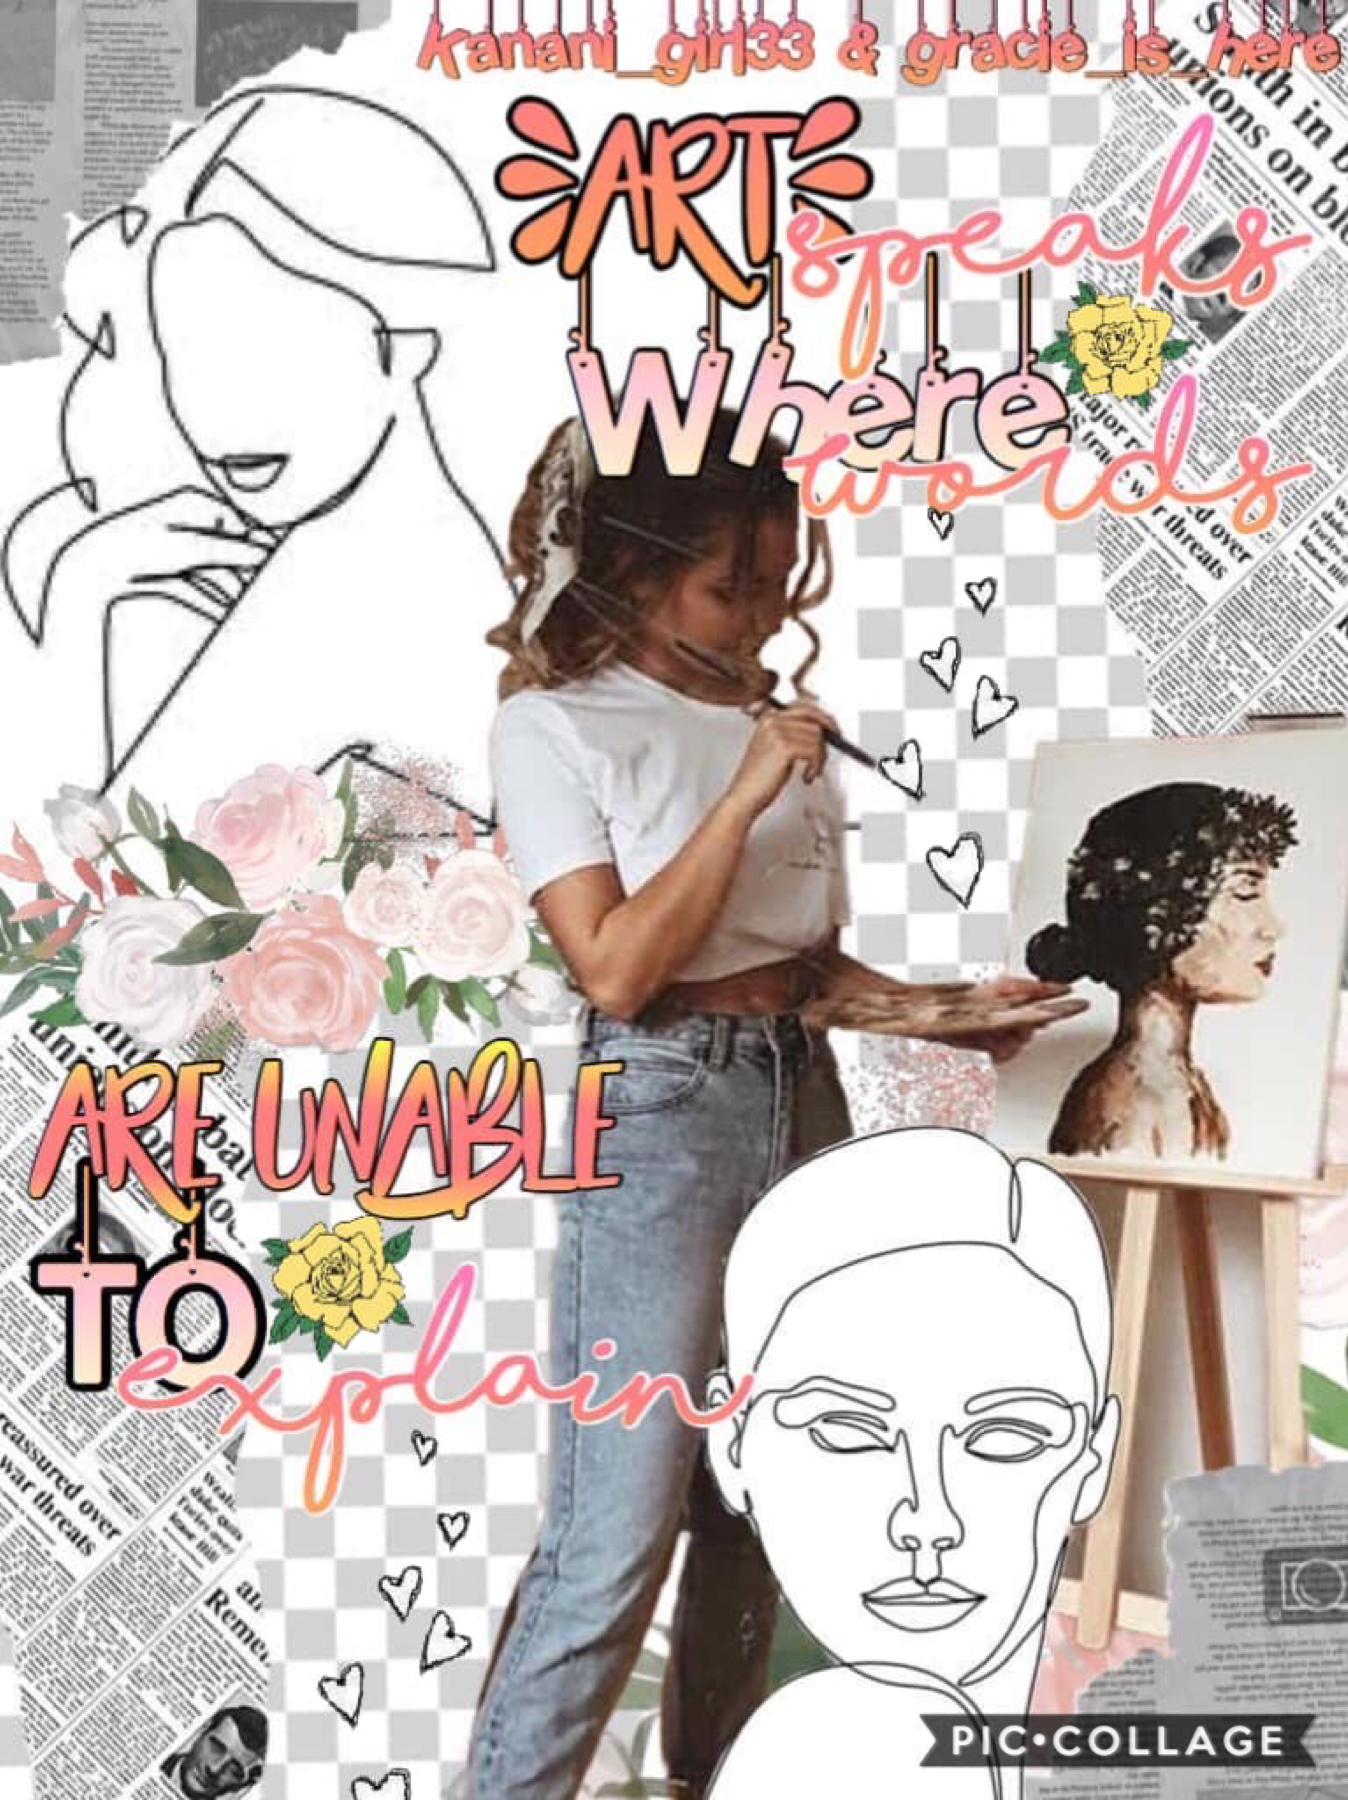 Collab with.... Gracie_Is_Here!!! You guys really need to go check out her account! Qotd: what's your favorite type of art?